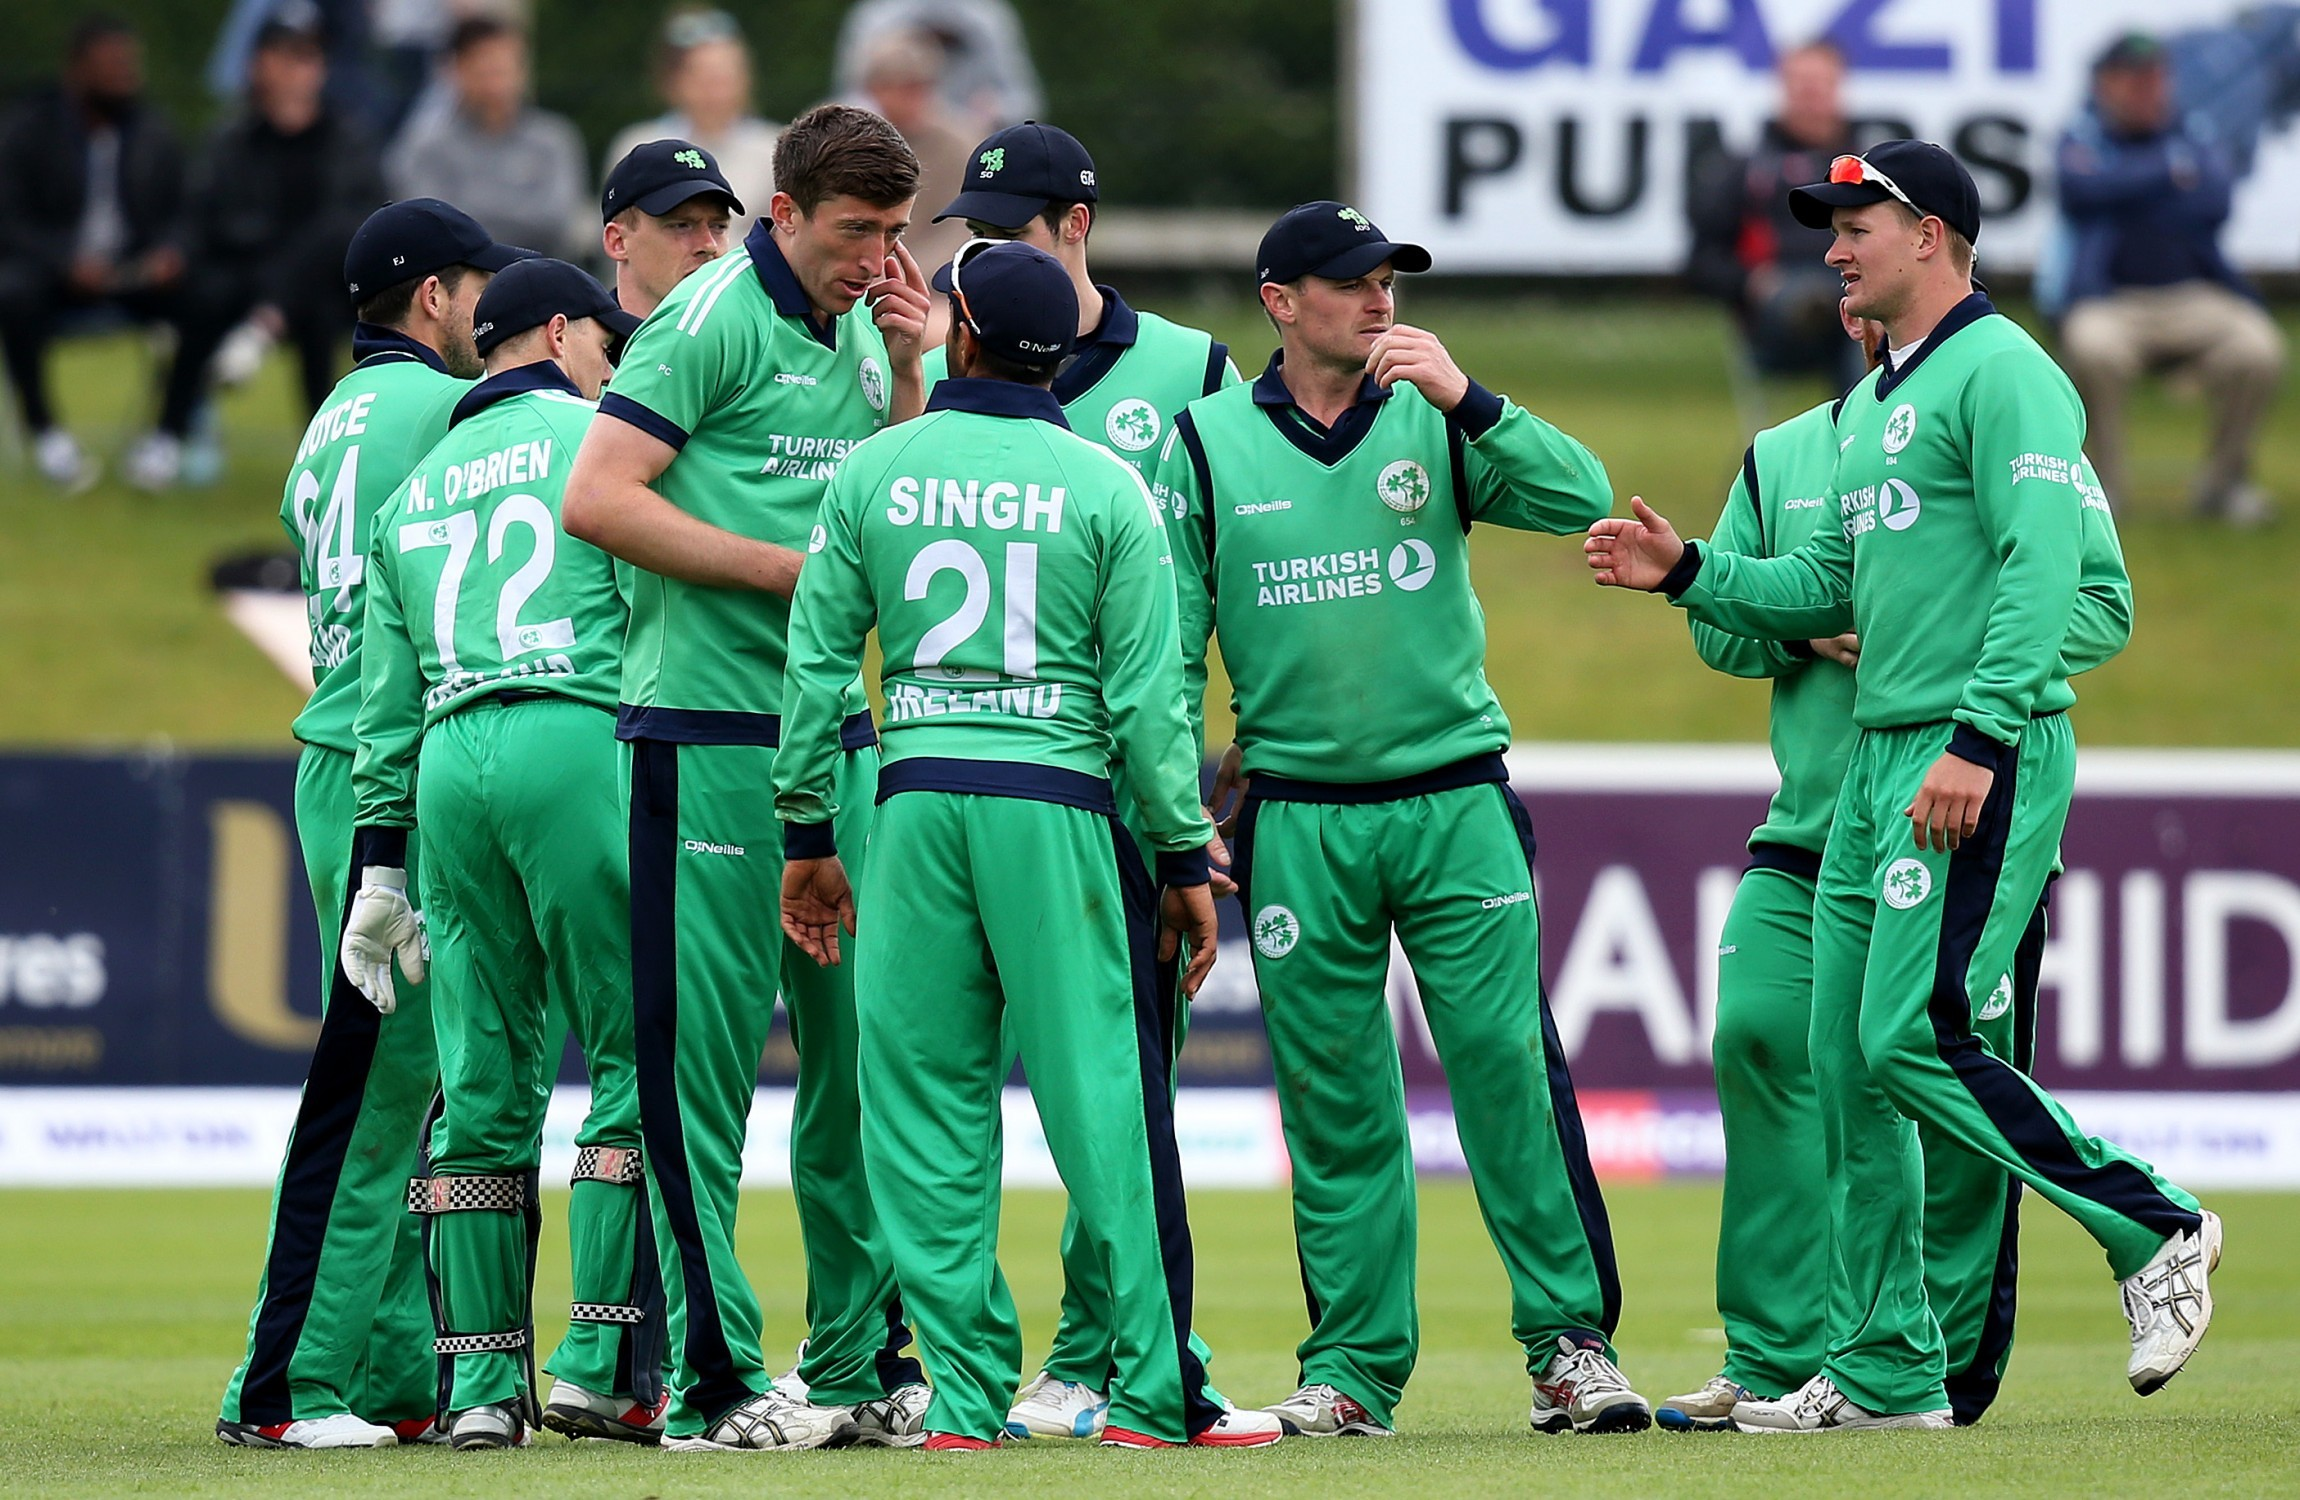 Ireland and Afghanistan become Test nations: ICC